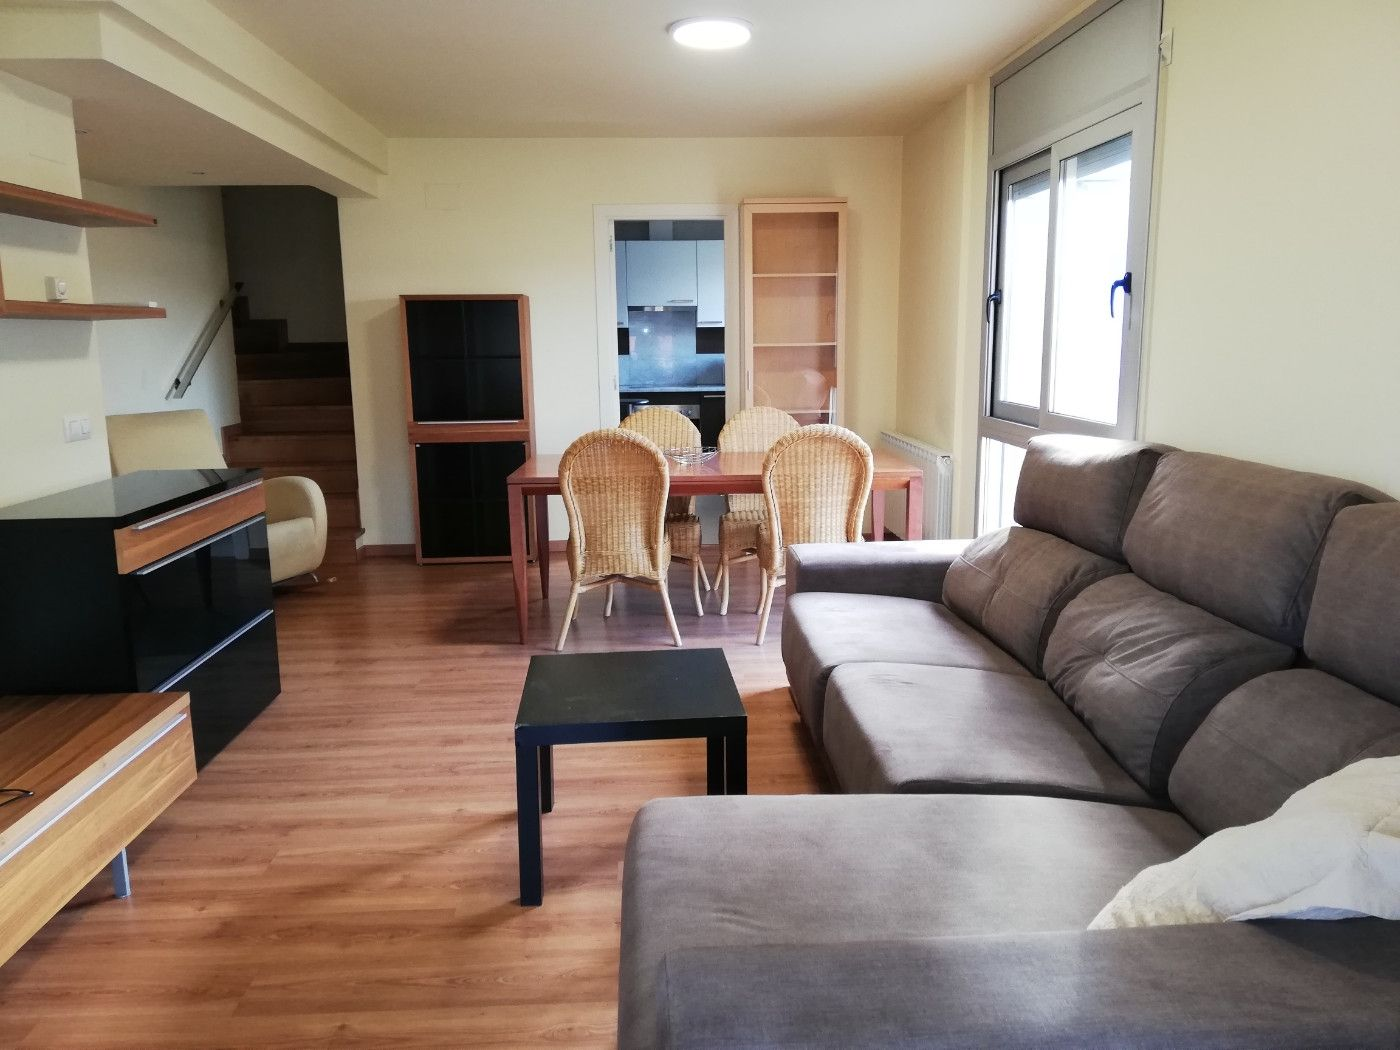 Rent Flat in Montilivi. De 4 hab, con pk incluido